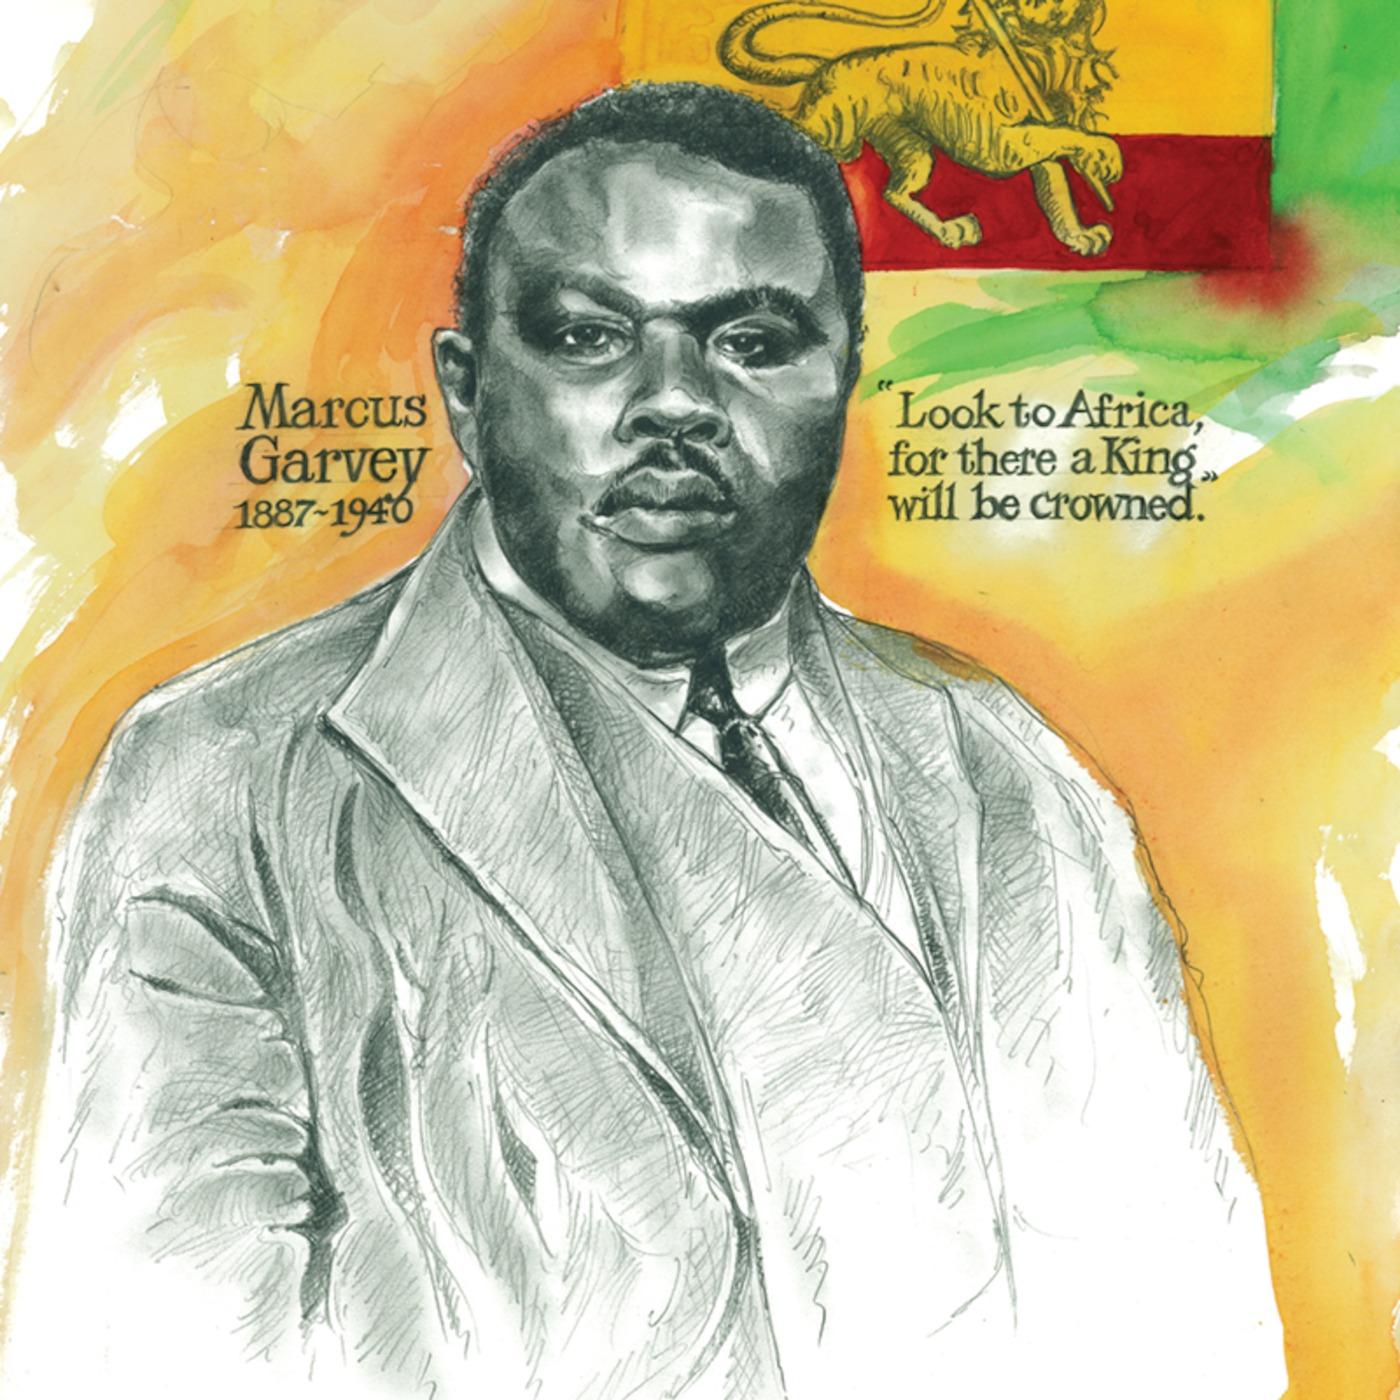 marcus garvey thesis Rapid essay researchers we offer fast essays with the best content marcus garvey explain the connection between the quote and your thesis transition body.